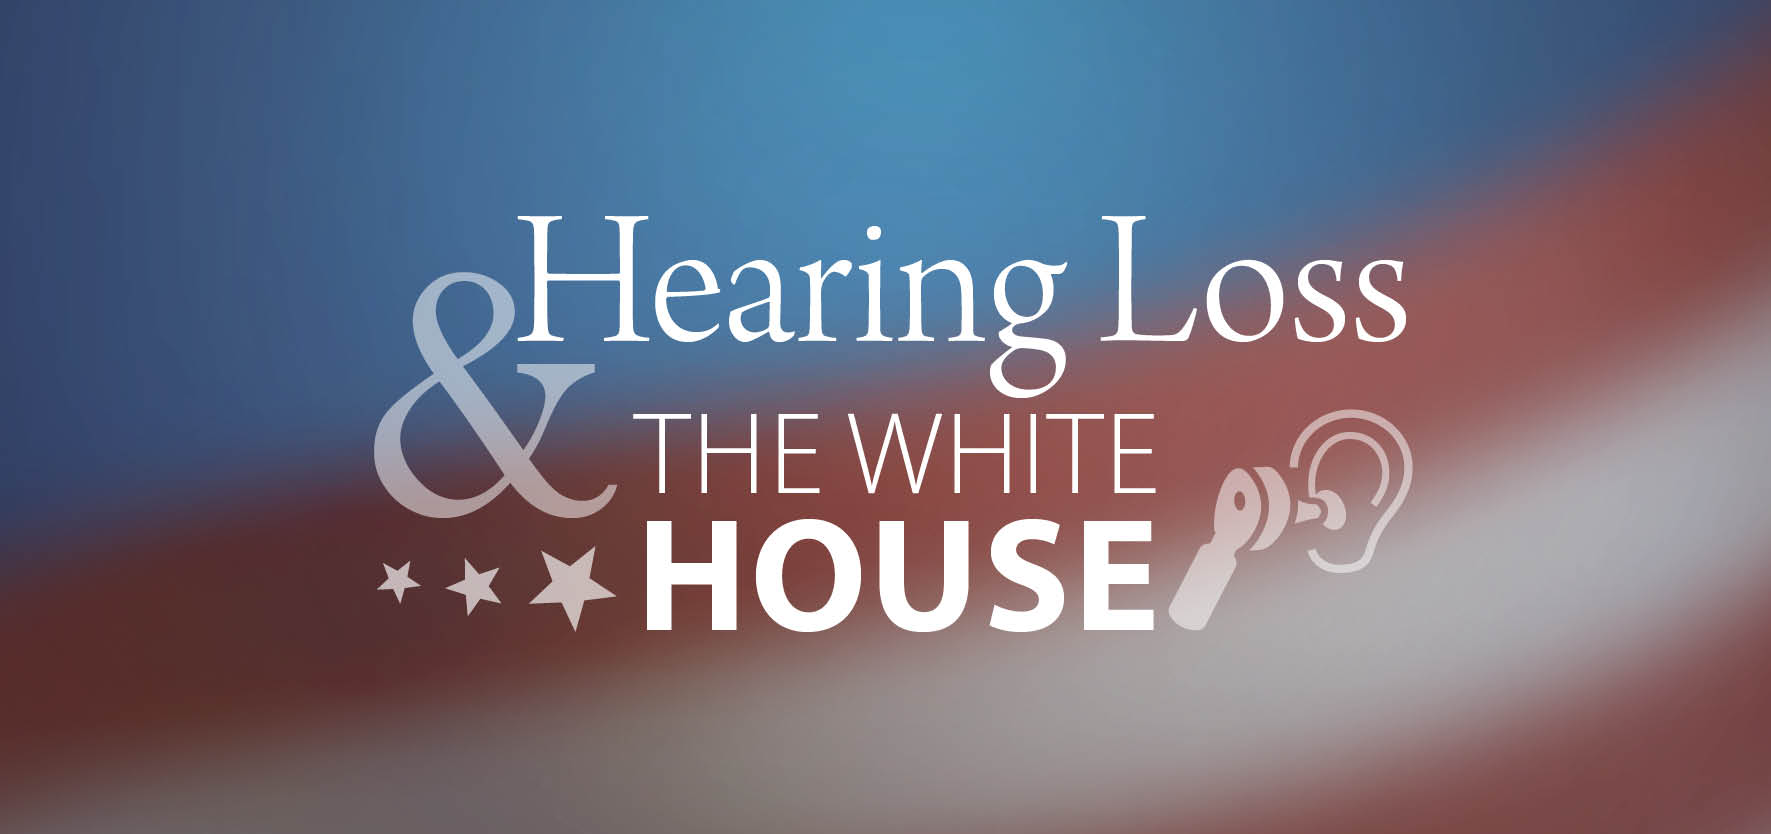 Hearing loss & the white house